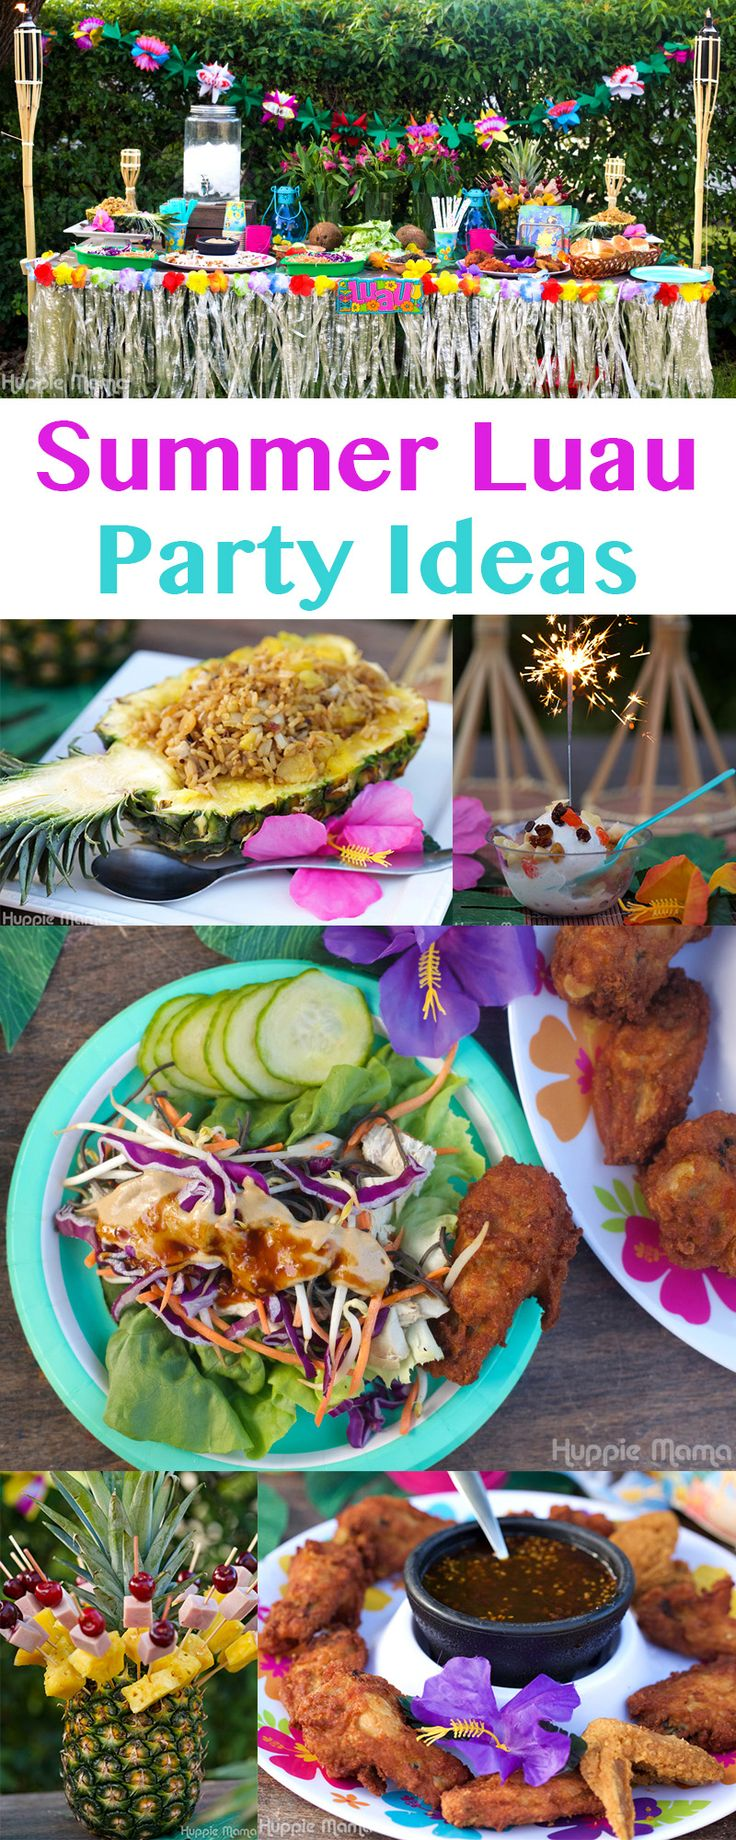 25+ best ideas about Luau table decorations on Pinterest